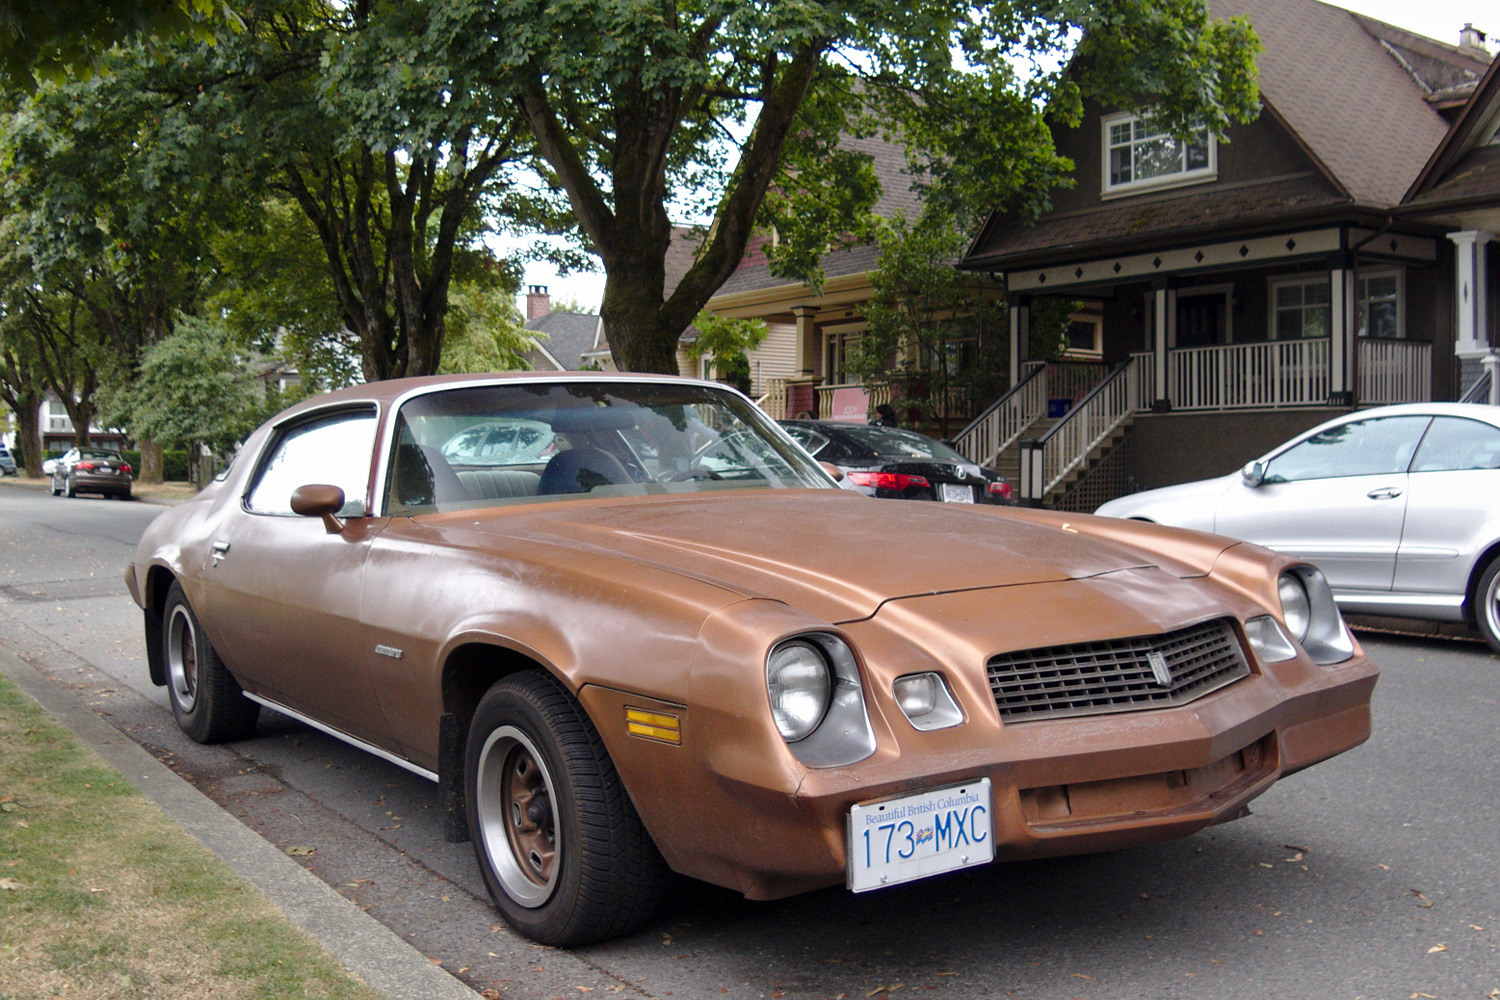 Old Parked Cars Vancouver: 1978 Chevrolet Camaro Sport Coupe